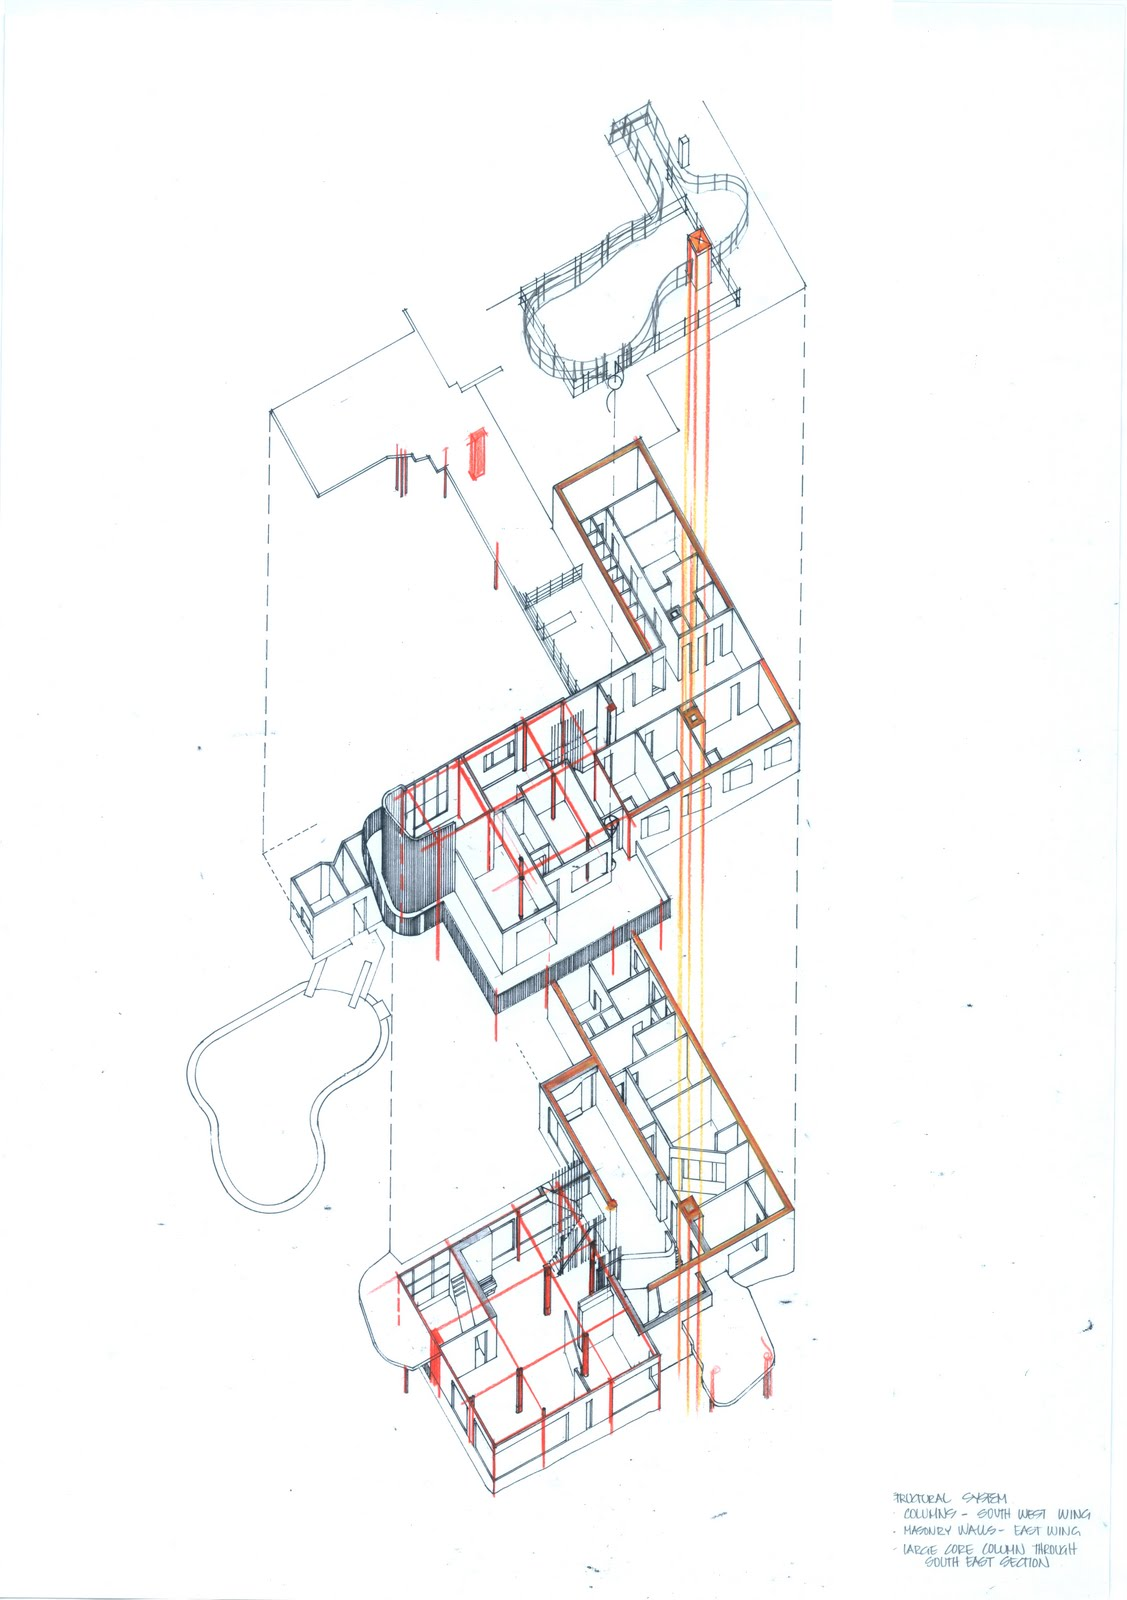 Sharryn Bowman Villa Mairea Axonometric Studies